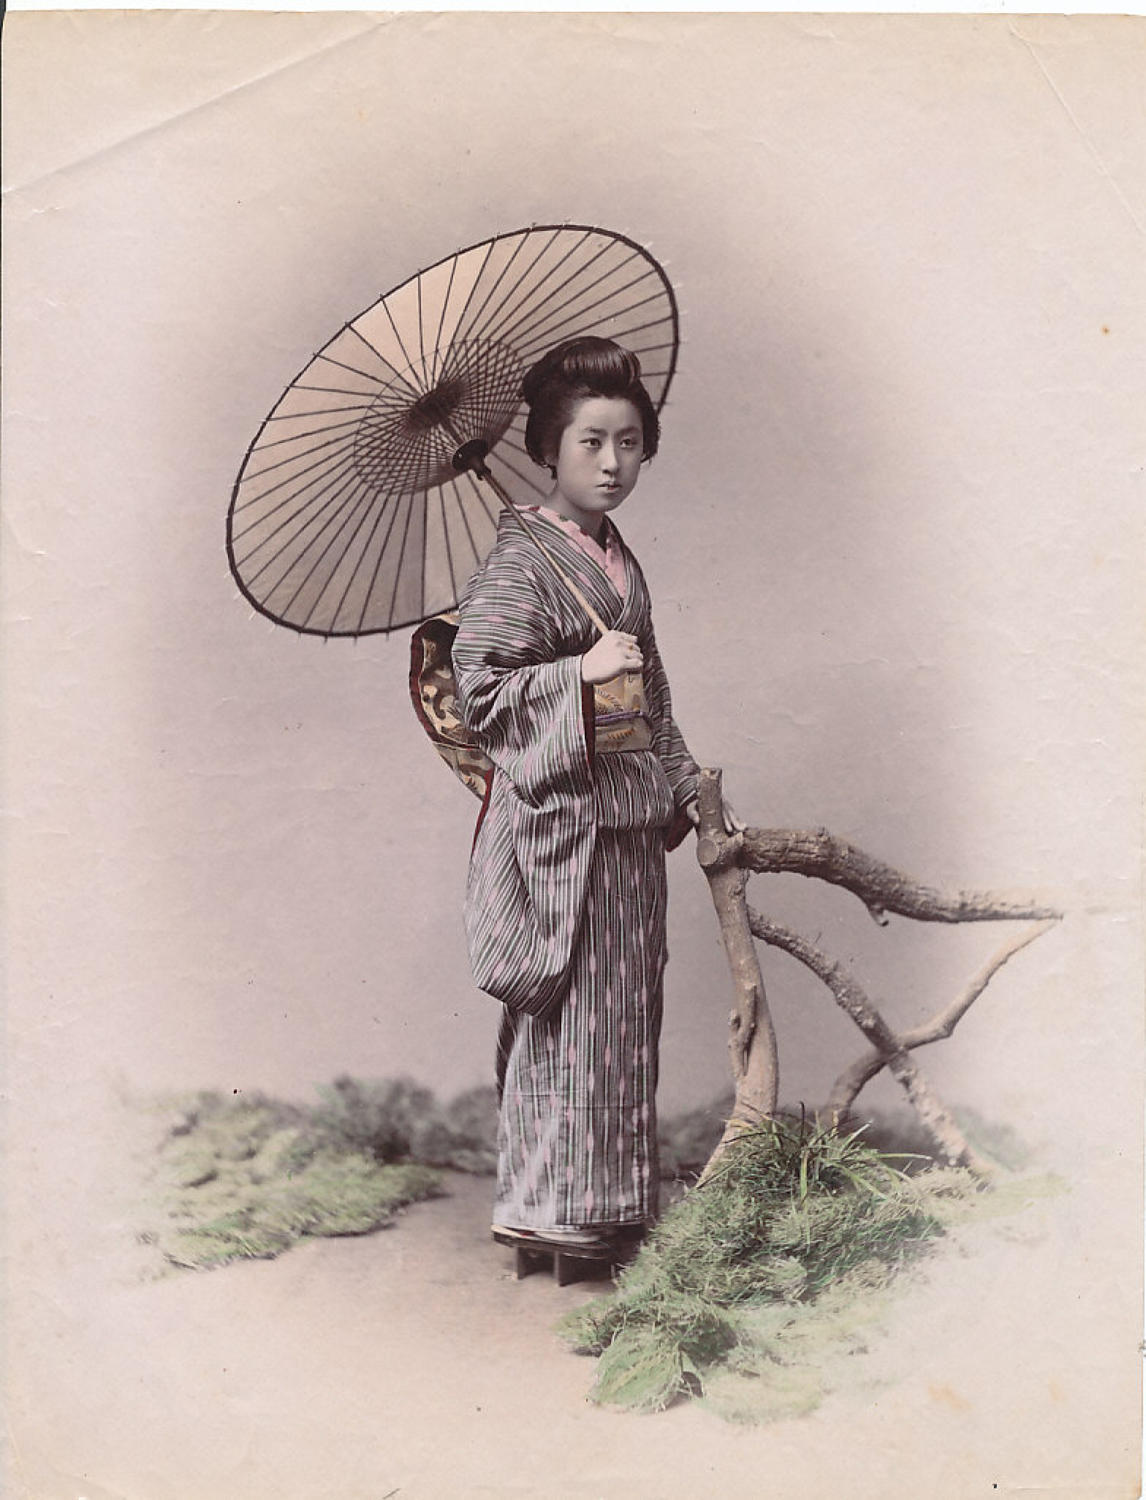 Japanese Girl with Sunshade. Japan C1880